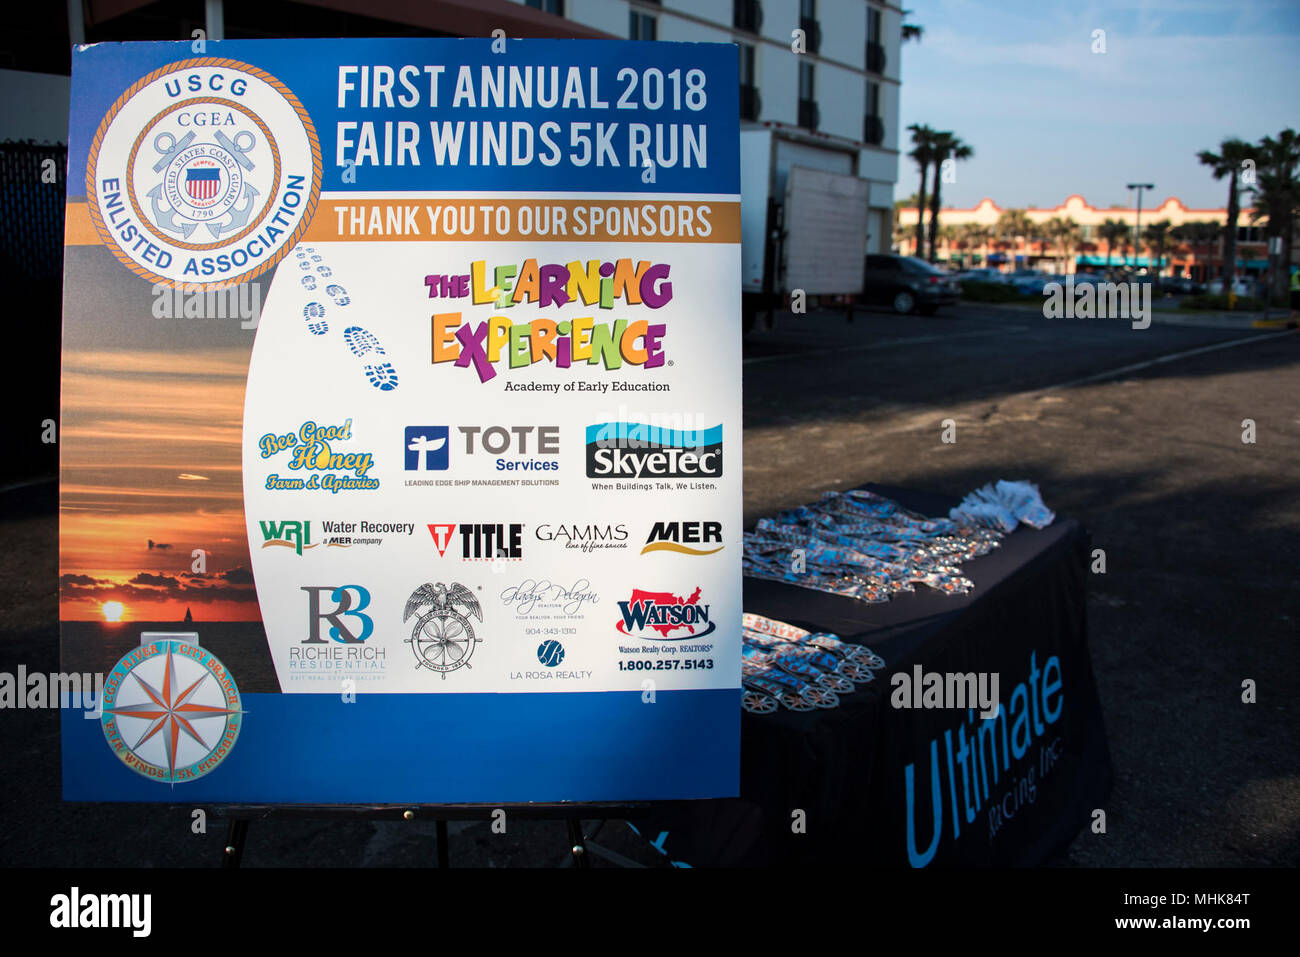 Fairwinds Customer Service >> A Sign Thanking The Sponsors Of The Fair Winds 5k Held On